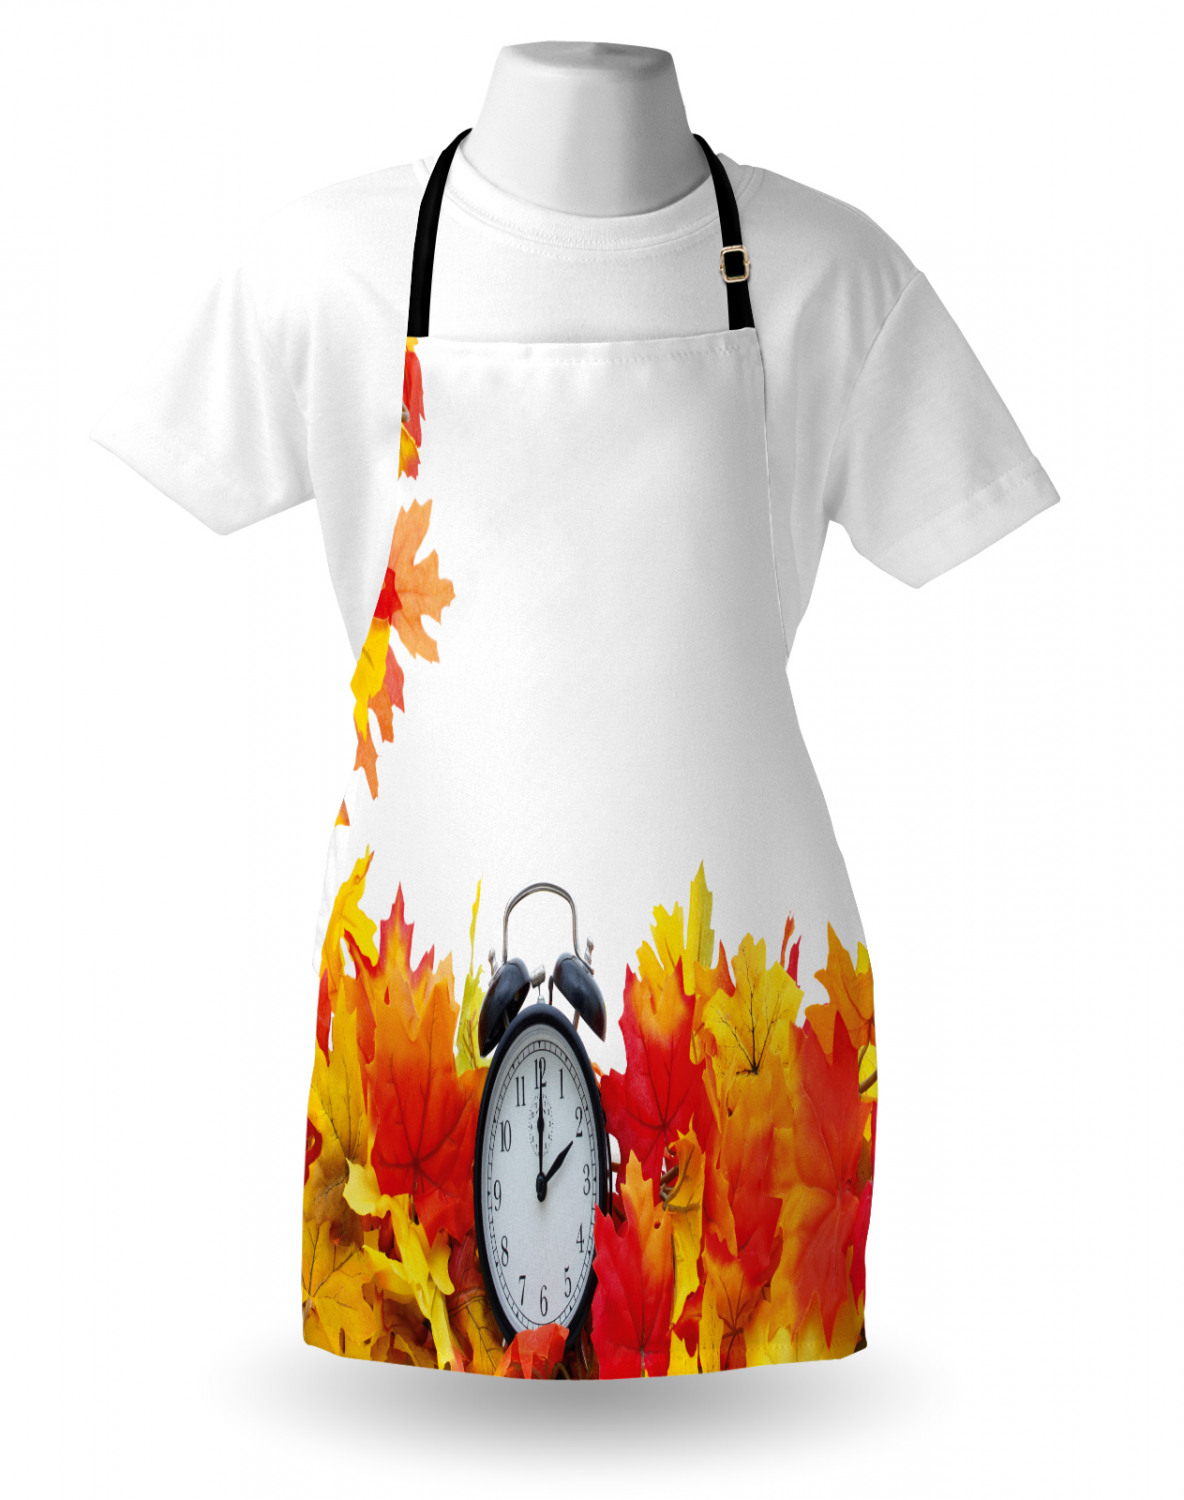 Apron Bib with Adjustable Neck for Cooking Adult Size by Ambesonne